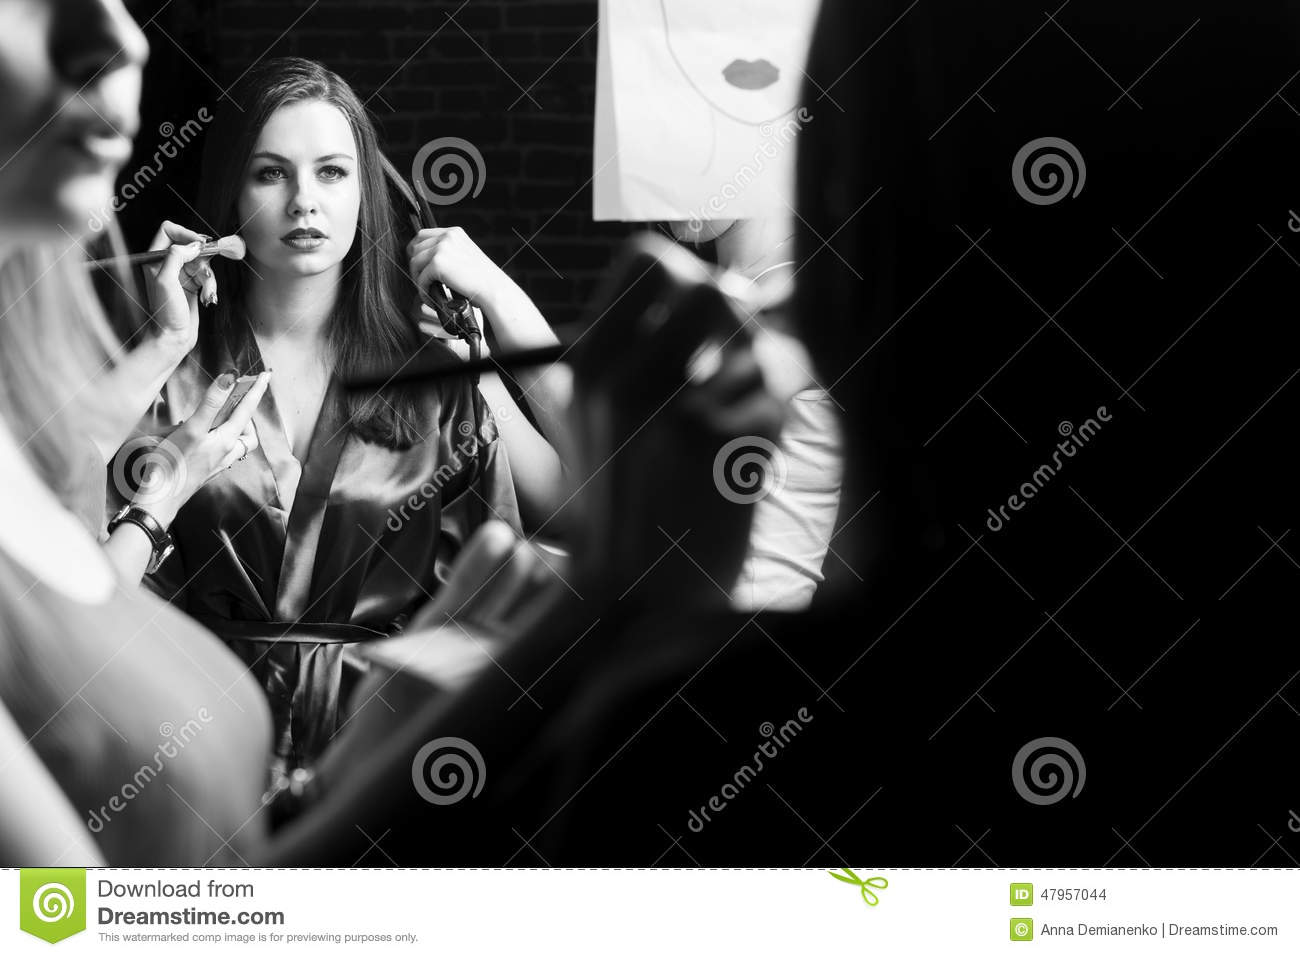 Fashion models prepared for runway by stylish designer. Black and white photography